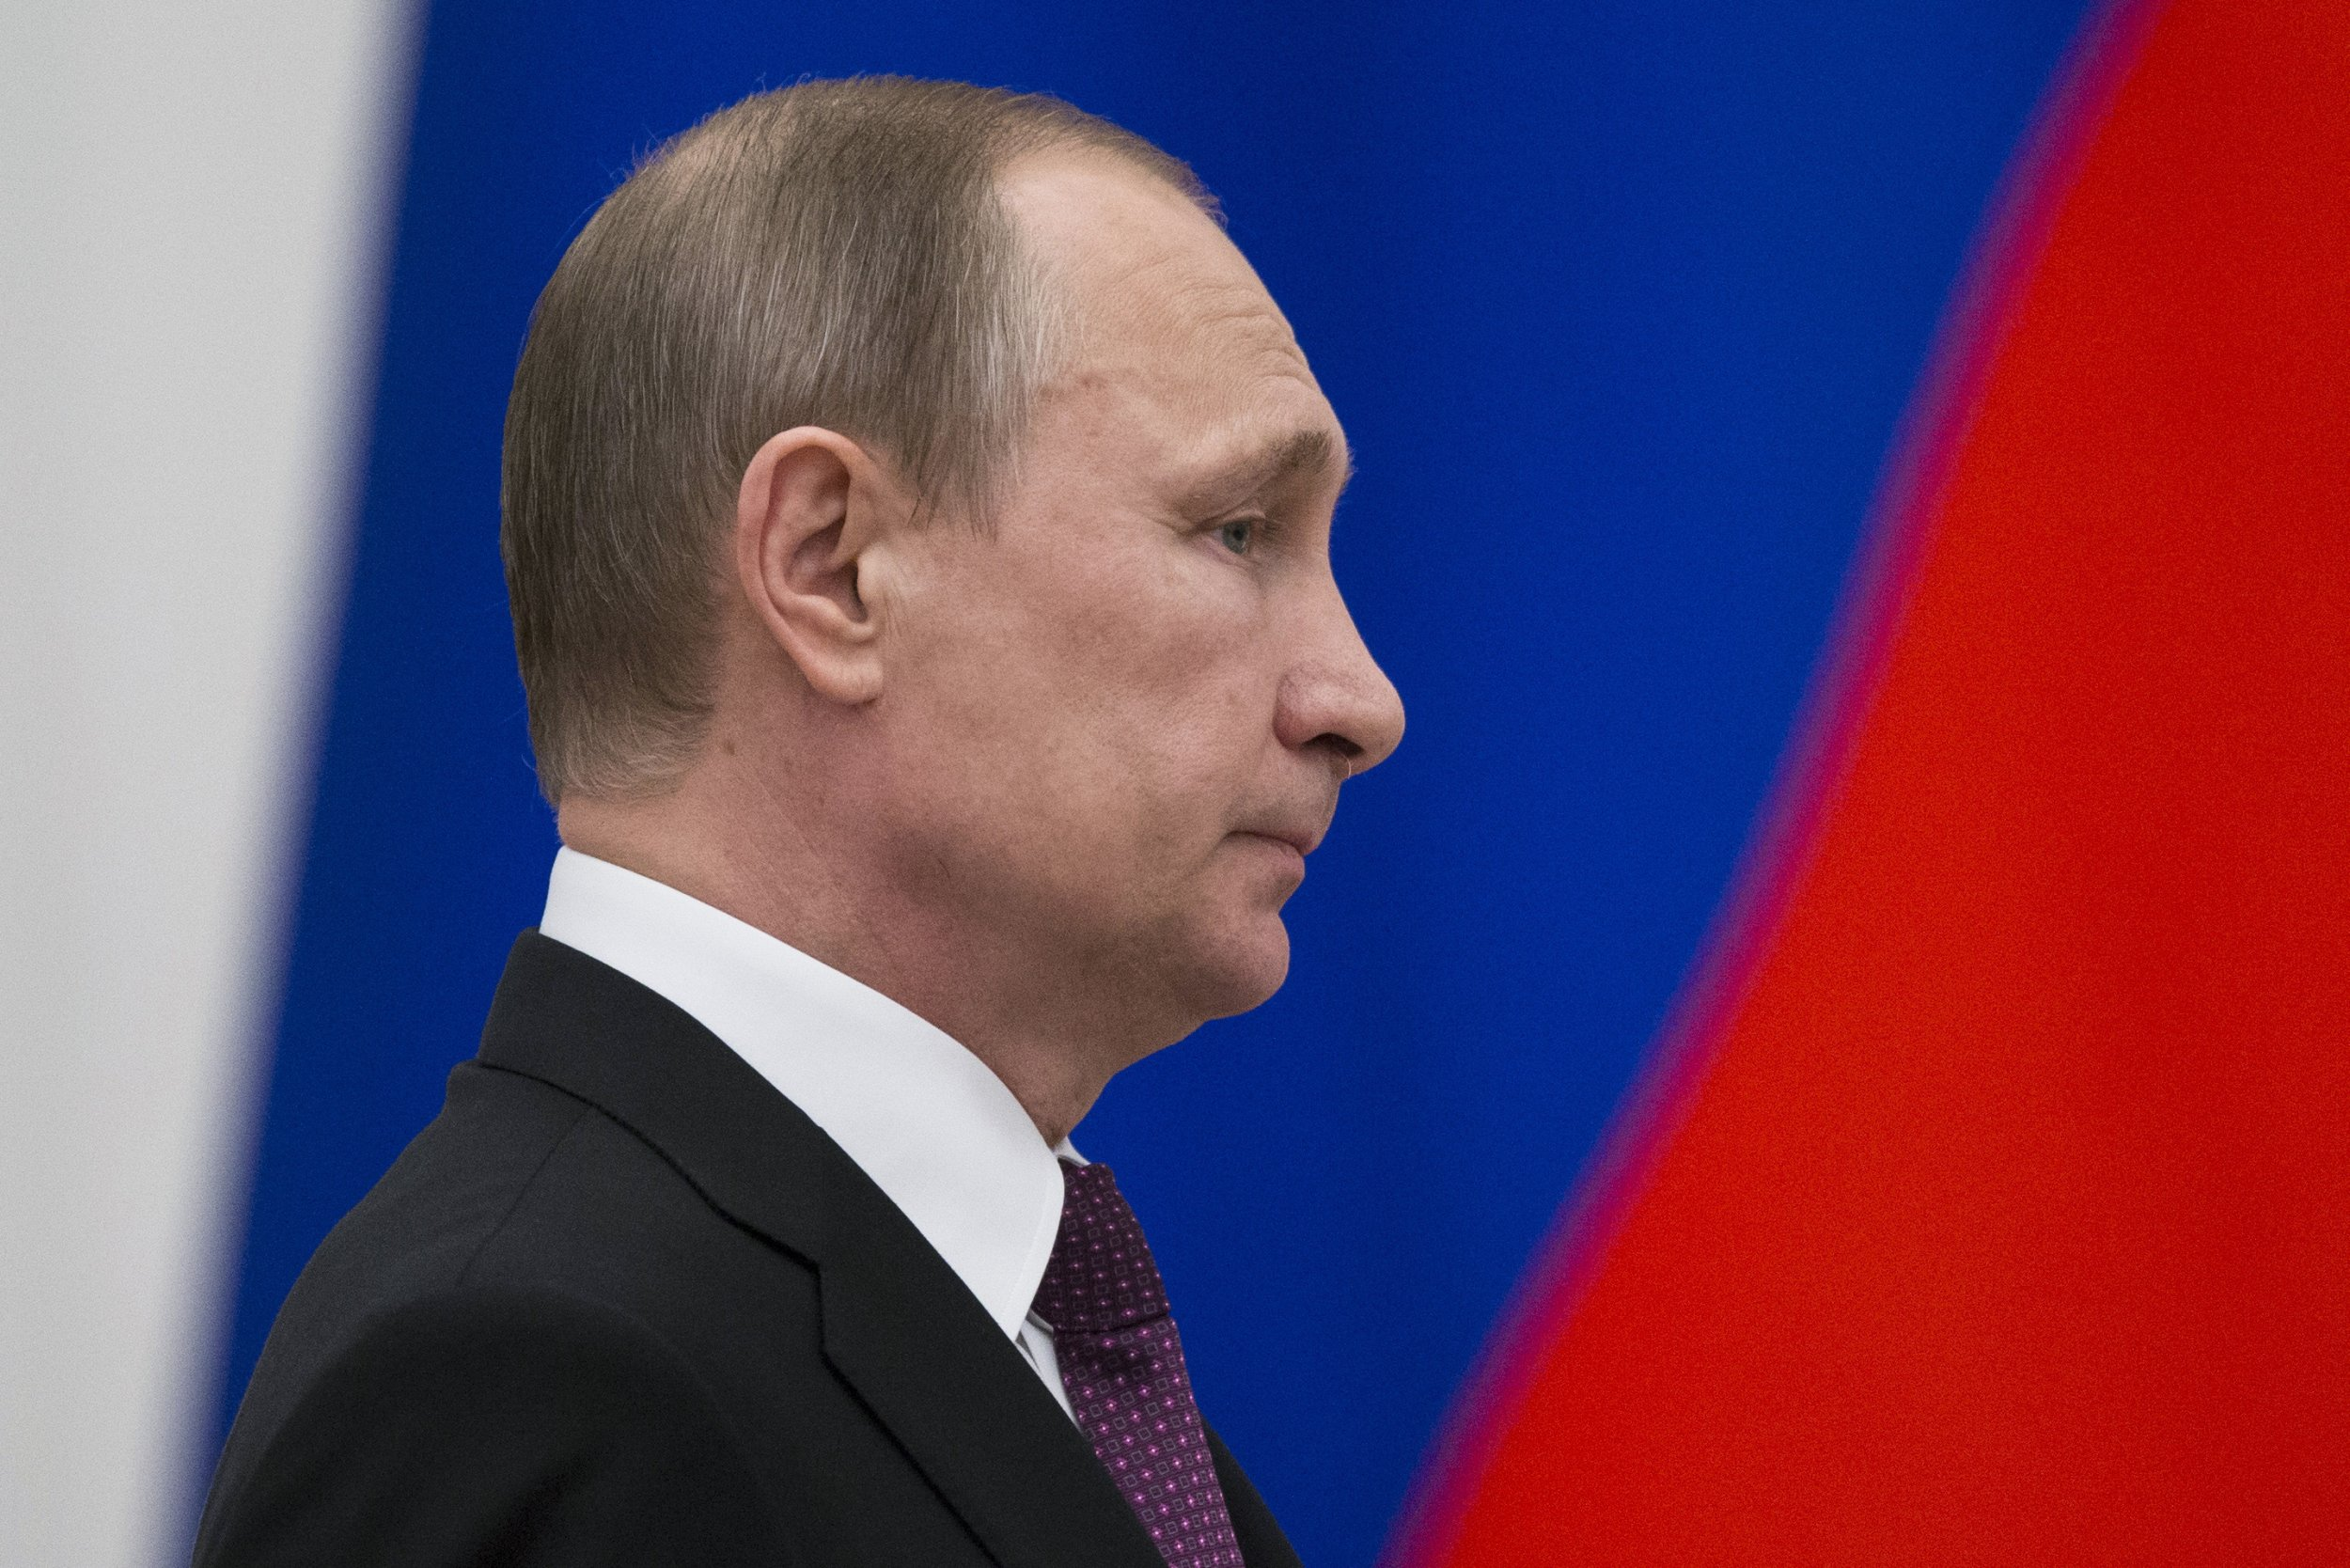 Putin in profile